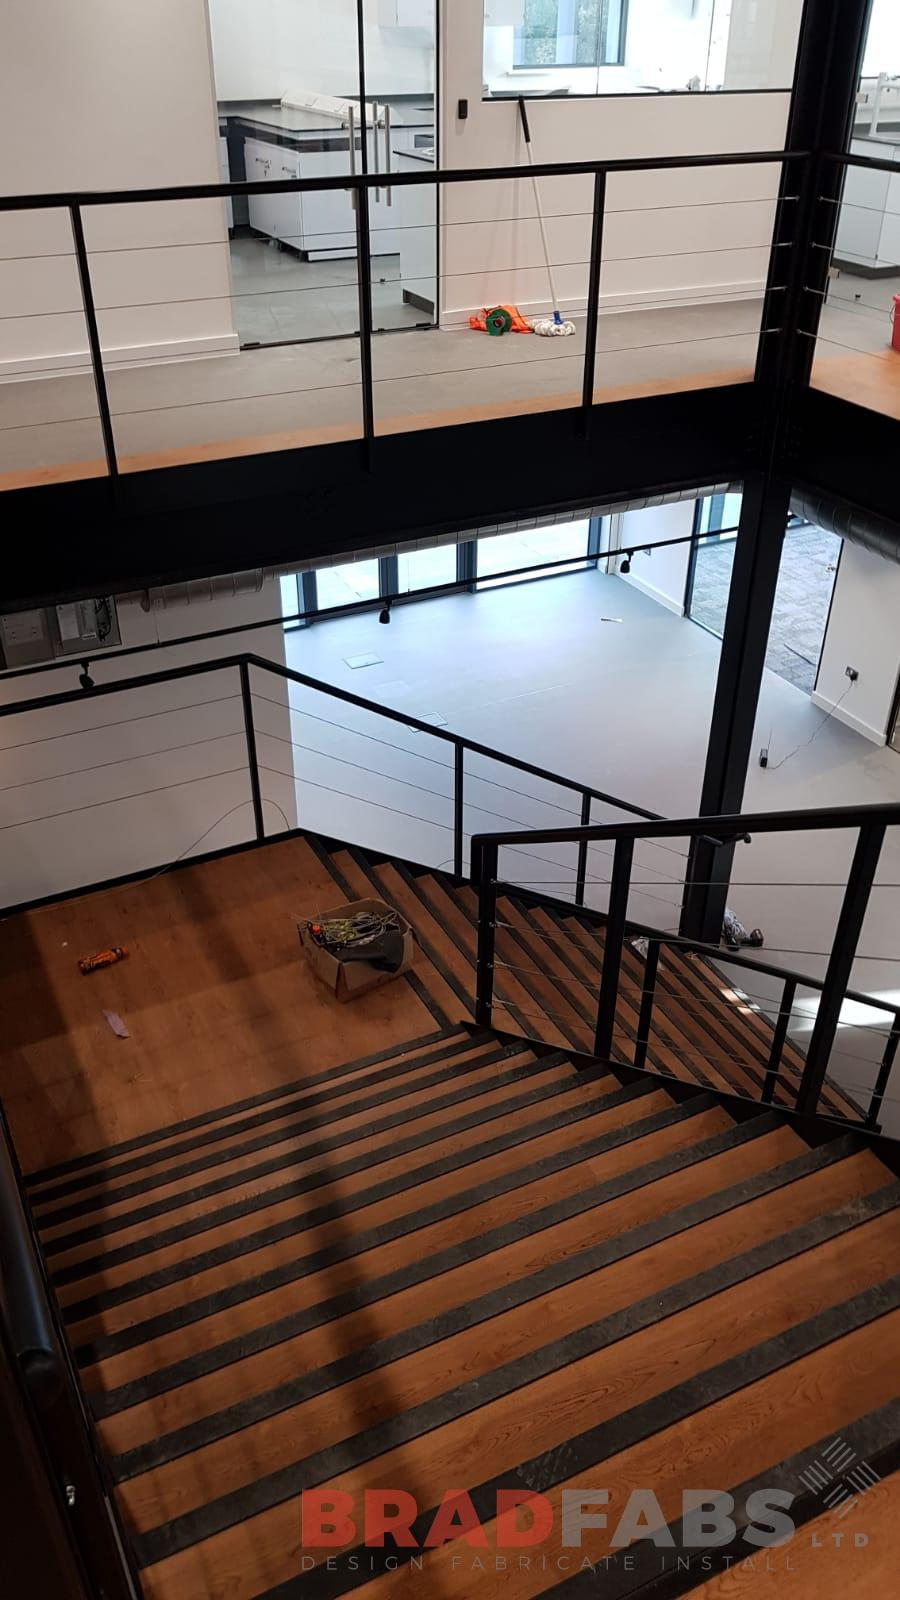 Commercial property staircase, Oak treads, Horizontal balustrade, Mild steel, Powder coated.